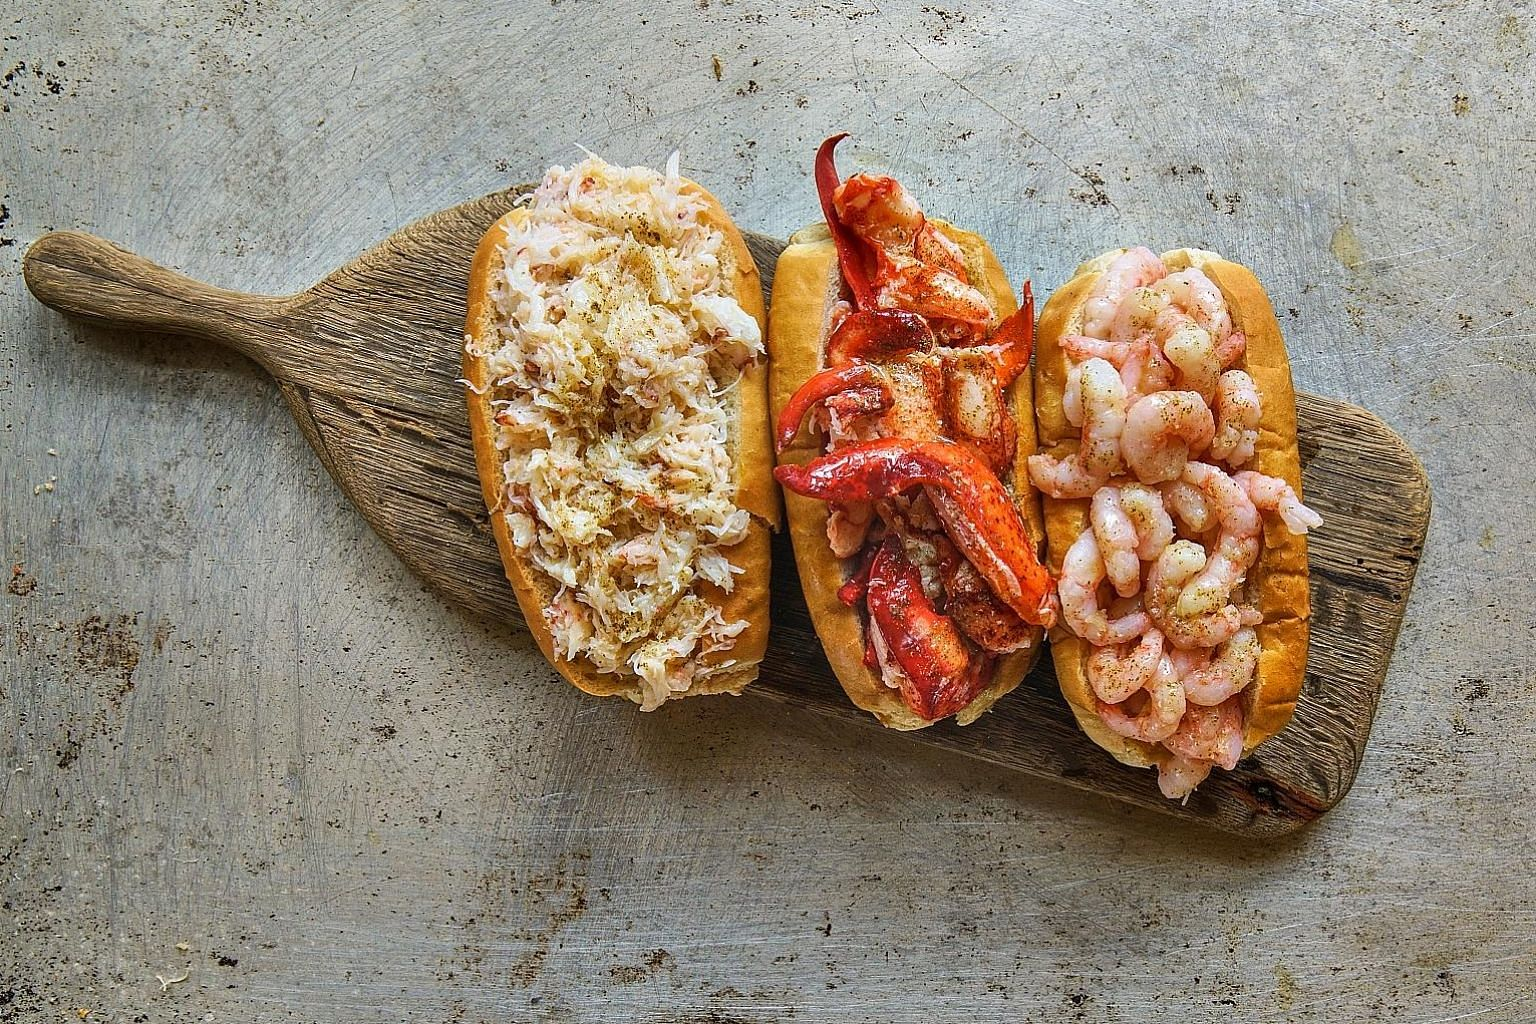 All three classic Luke's Lobster rolls - (from left) Crab Roll, Lobster Roll and Prawn Roll - will be available at Luke's Lobster Singapore.